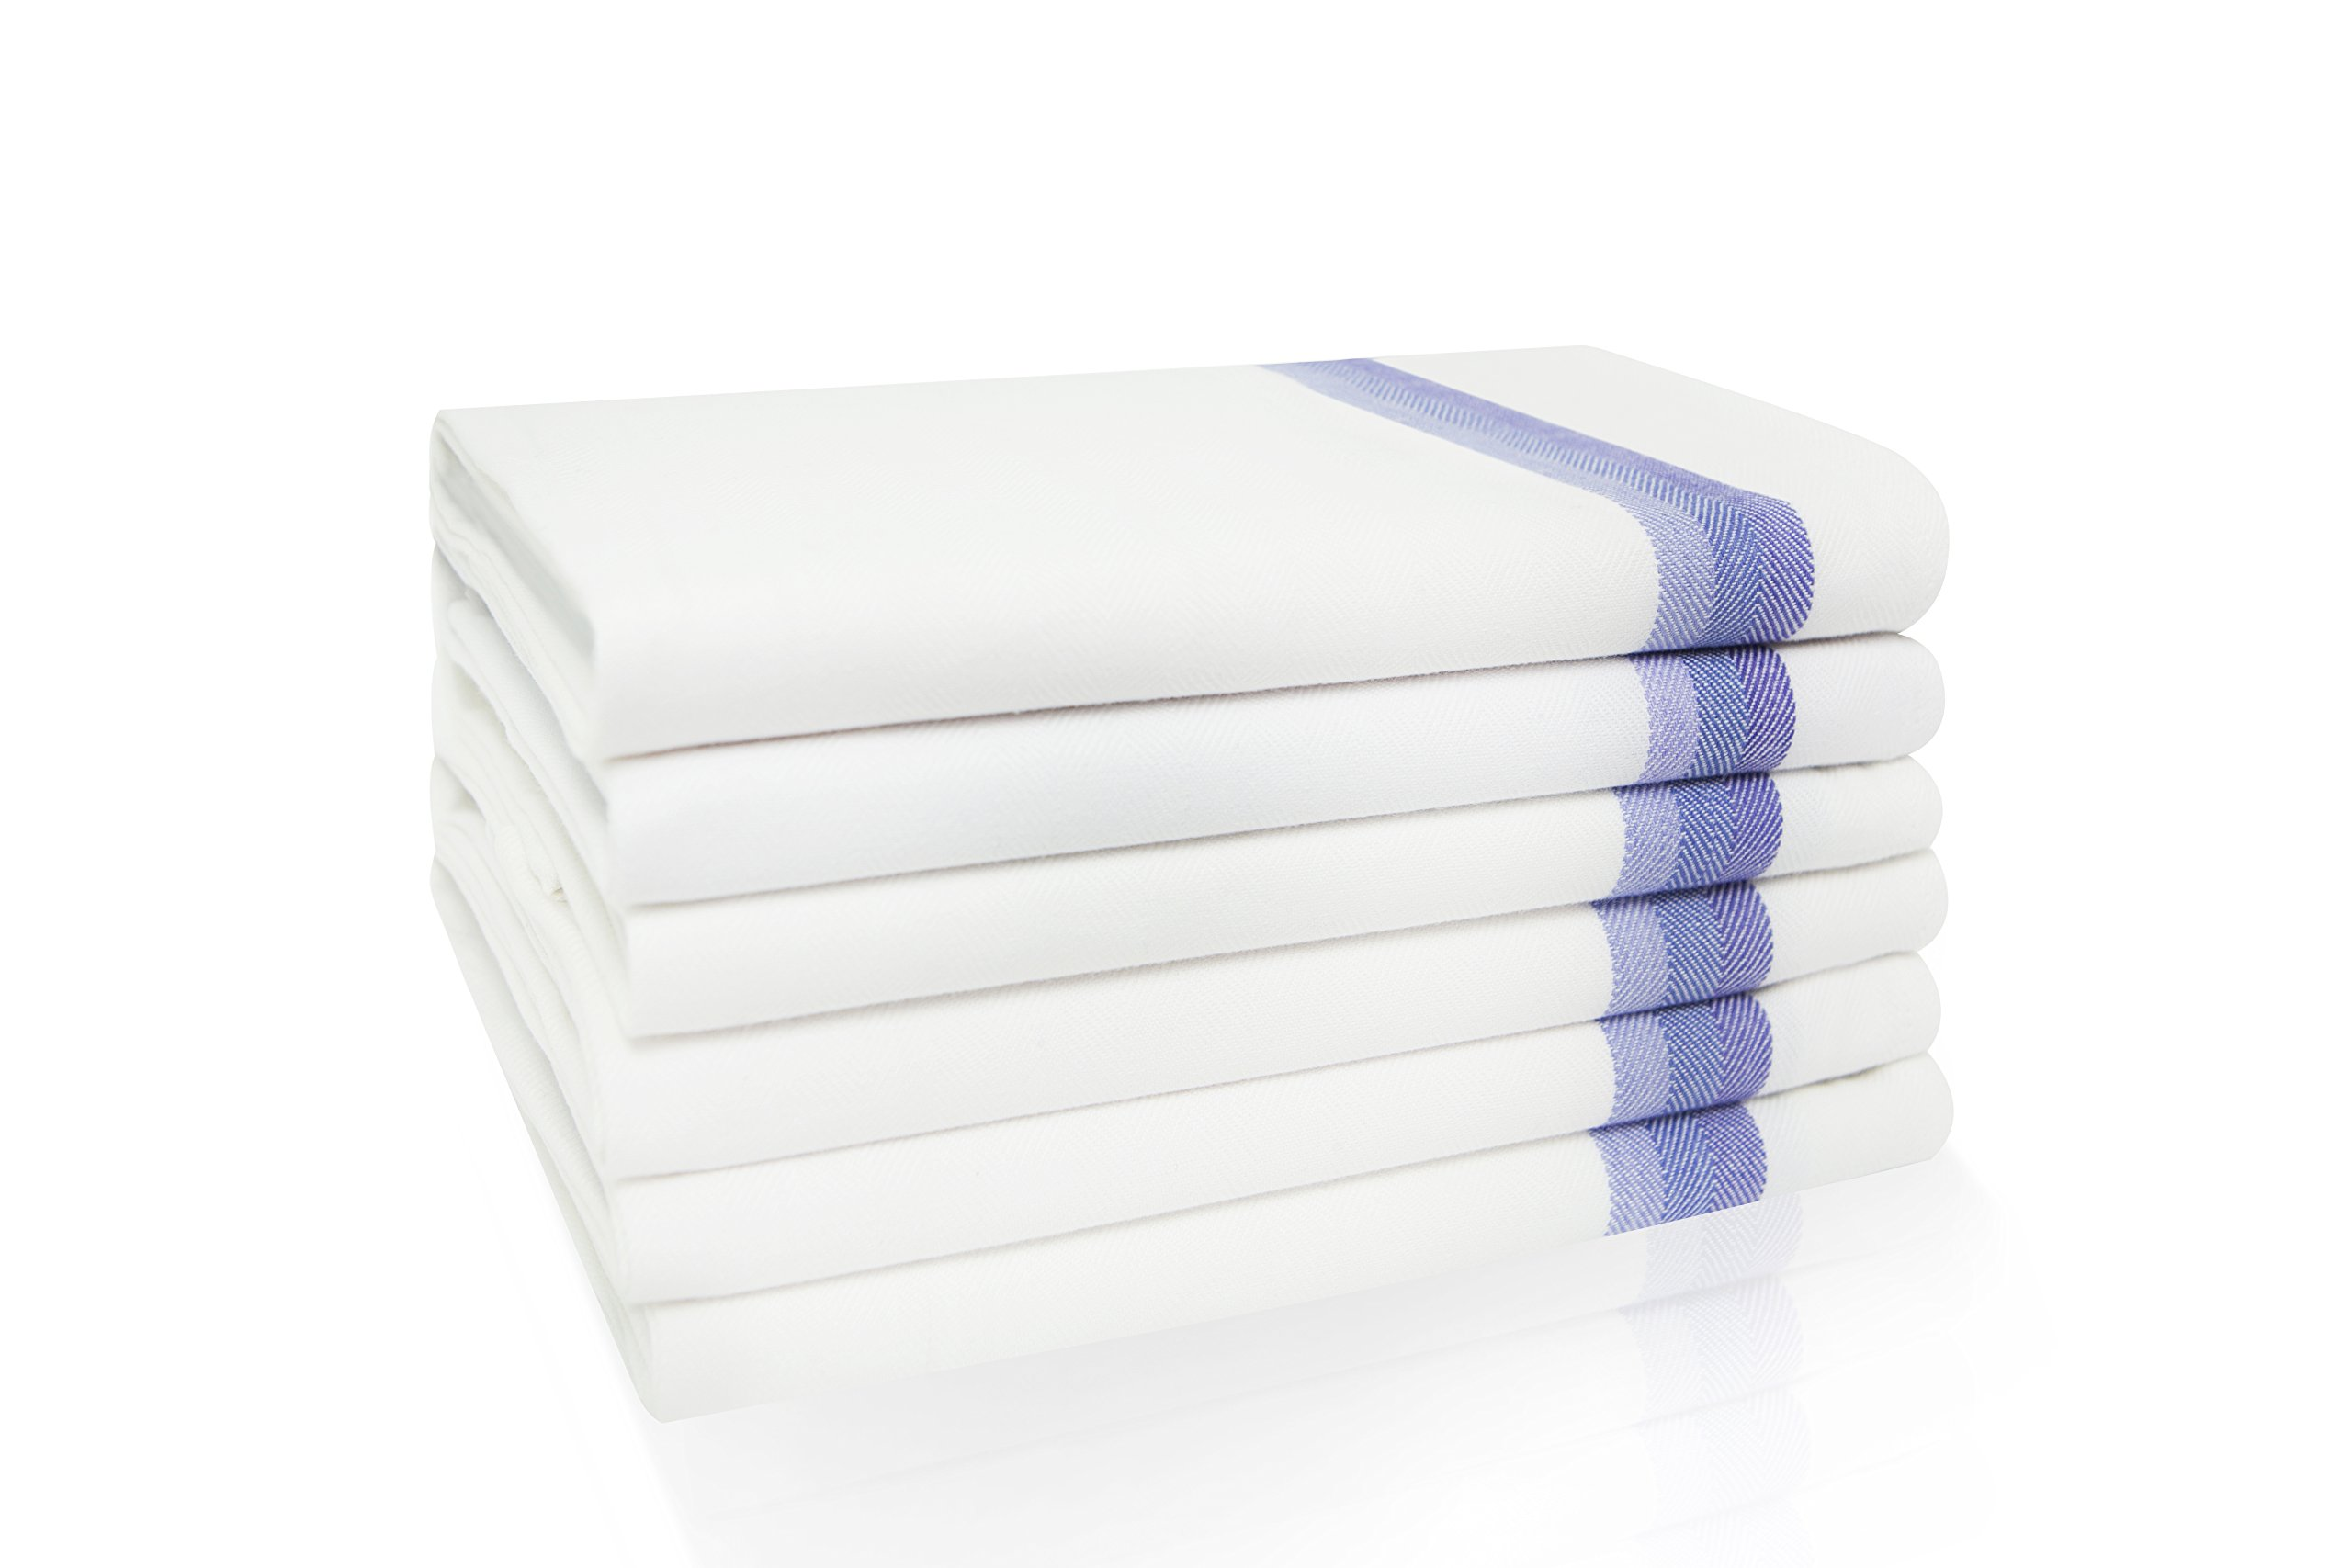 Harringdons Kitchen Dish Towels Set of 6 - Tea Towels 100% Cotton. Large Dish Cloths 28''x20'' Soft and Absorbent. White with Blue Stripes. There's no Substitute for Quality.